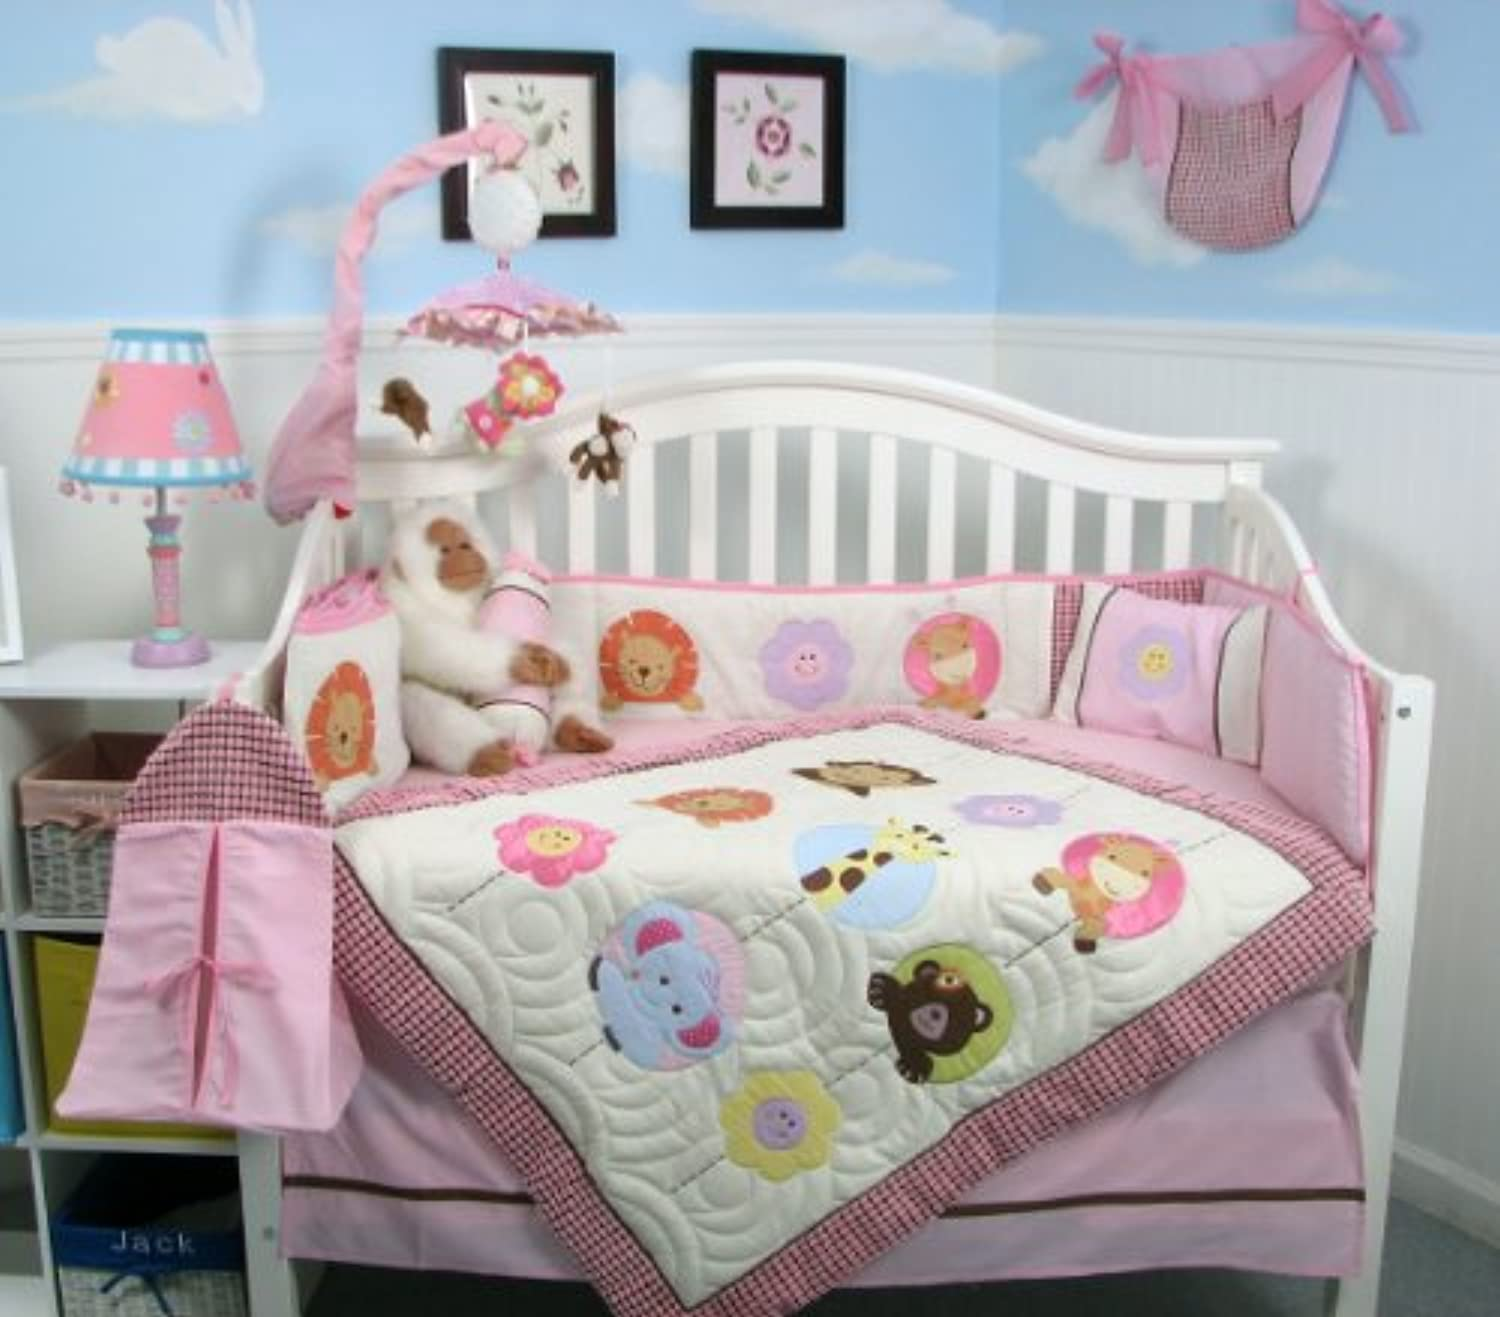 SoHo Lollipop Baby Crib Nursery Bedding Set 13 pcs included Diaper Bag with Changing Pad & Bottle Case by SoHo Designs